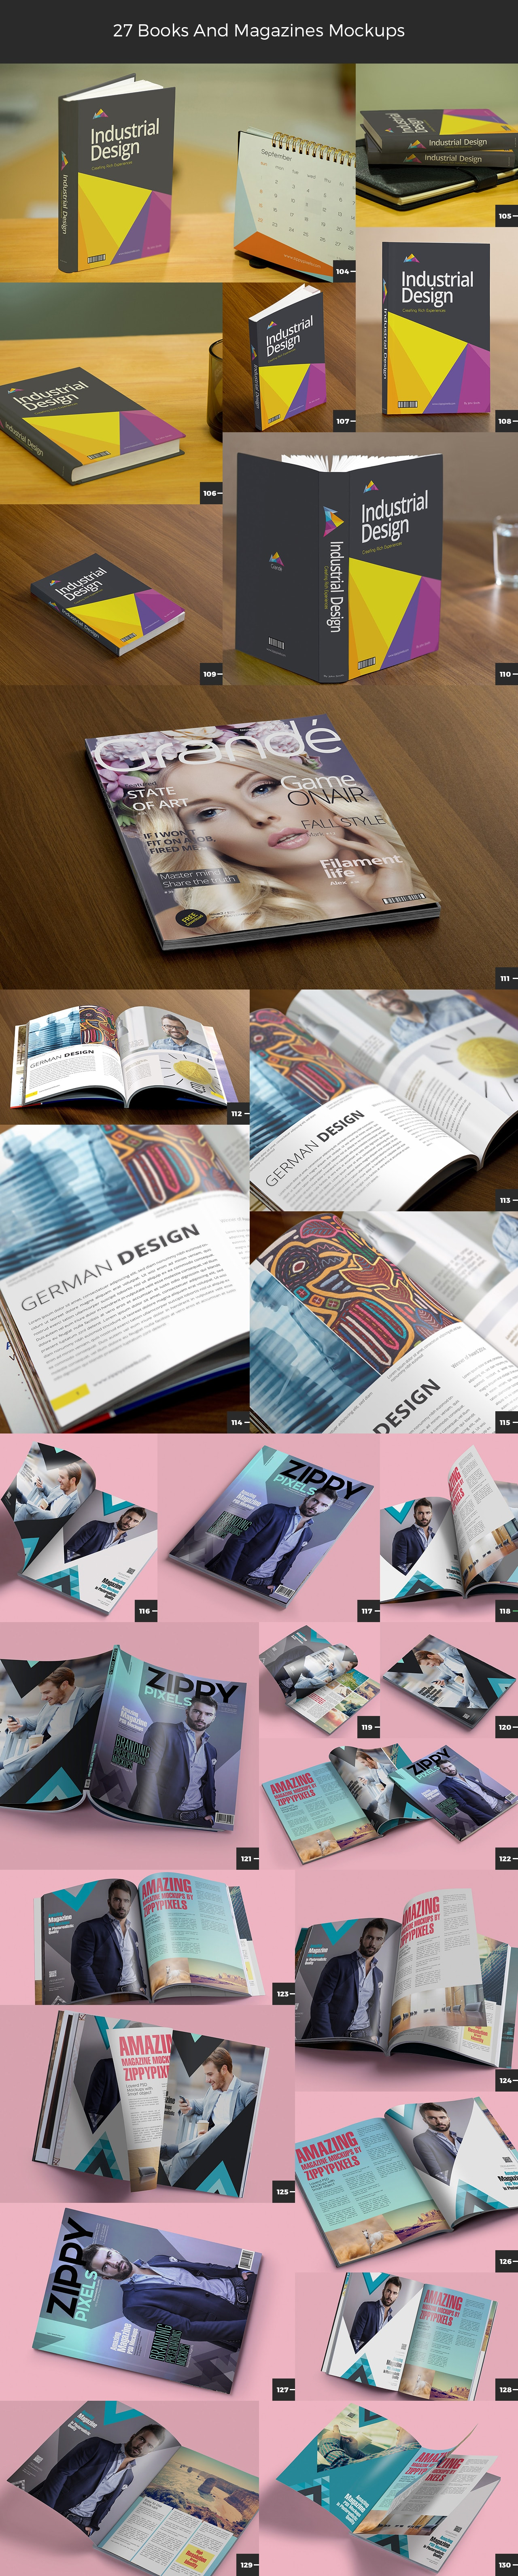 books-magazine-mockups